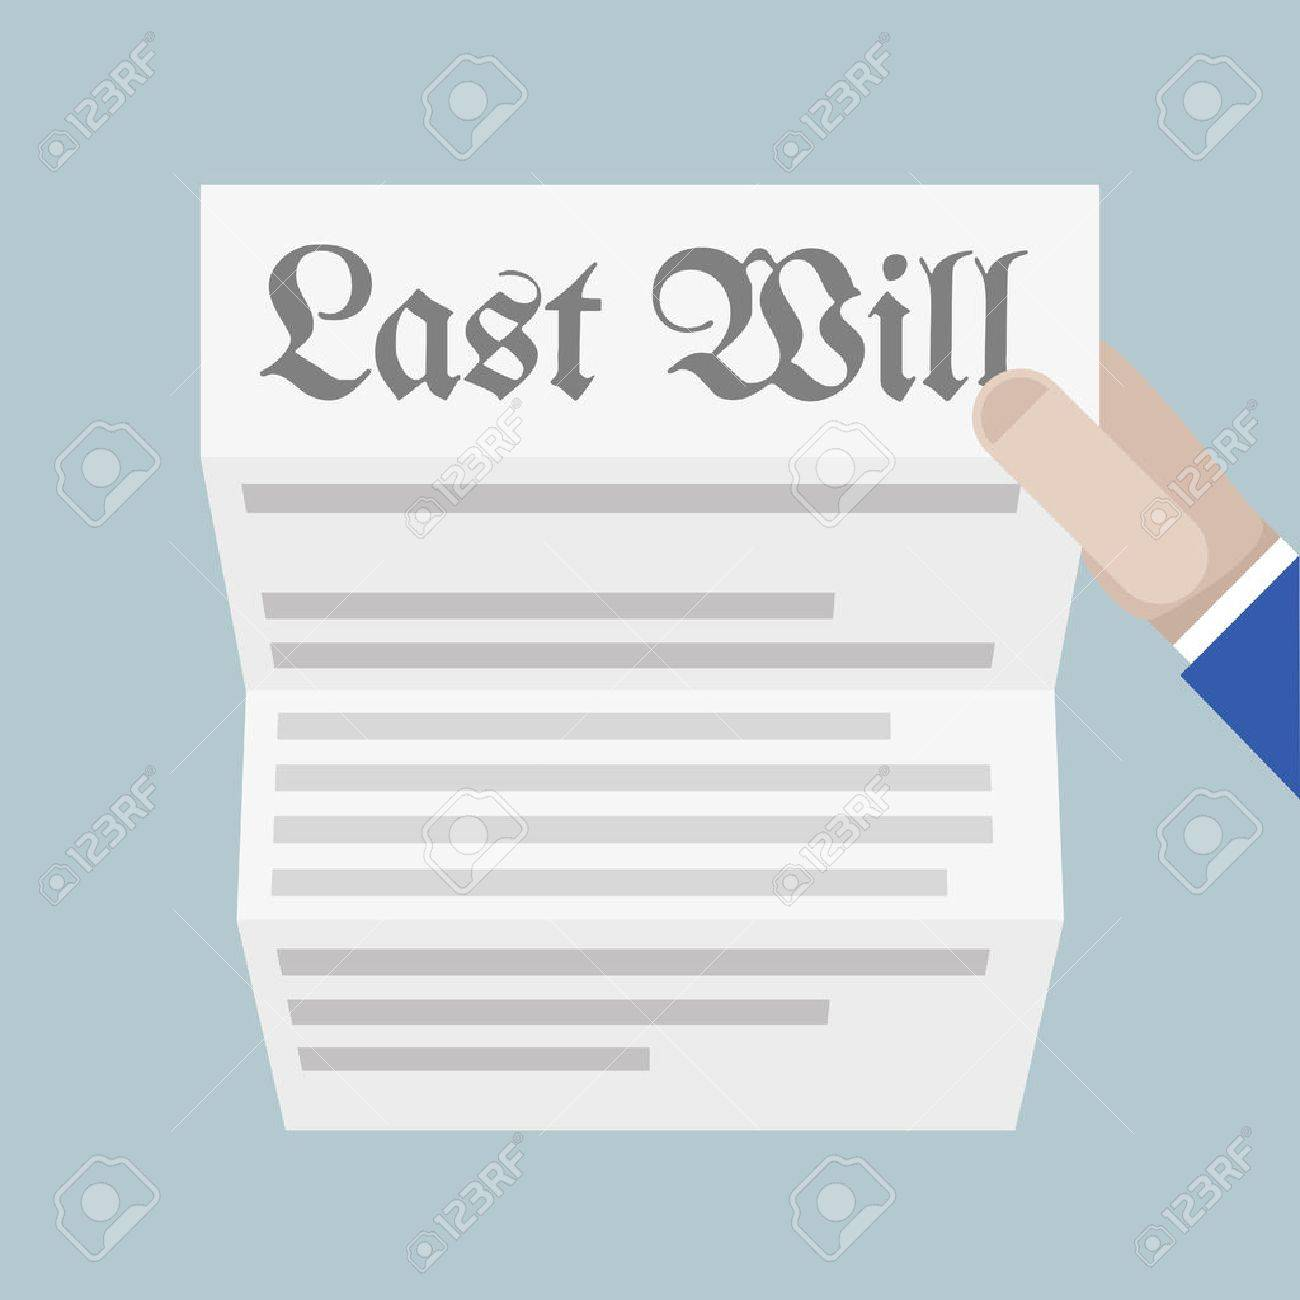 minimalistic illustration of a hand holding a sheet of paper with Last Will headline, eps10 vector - 41533017